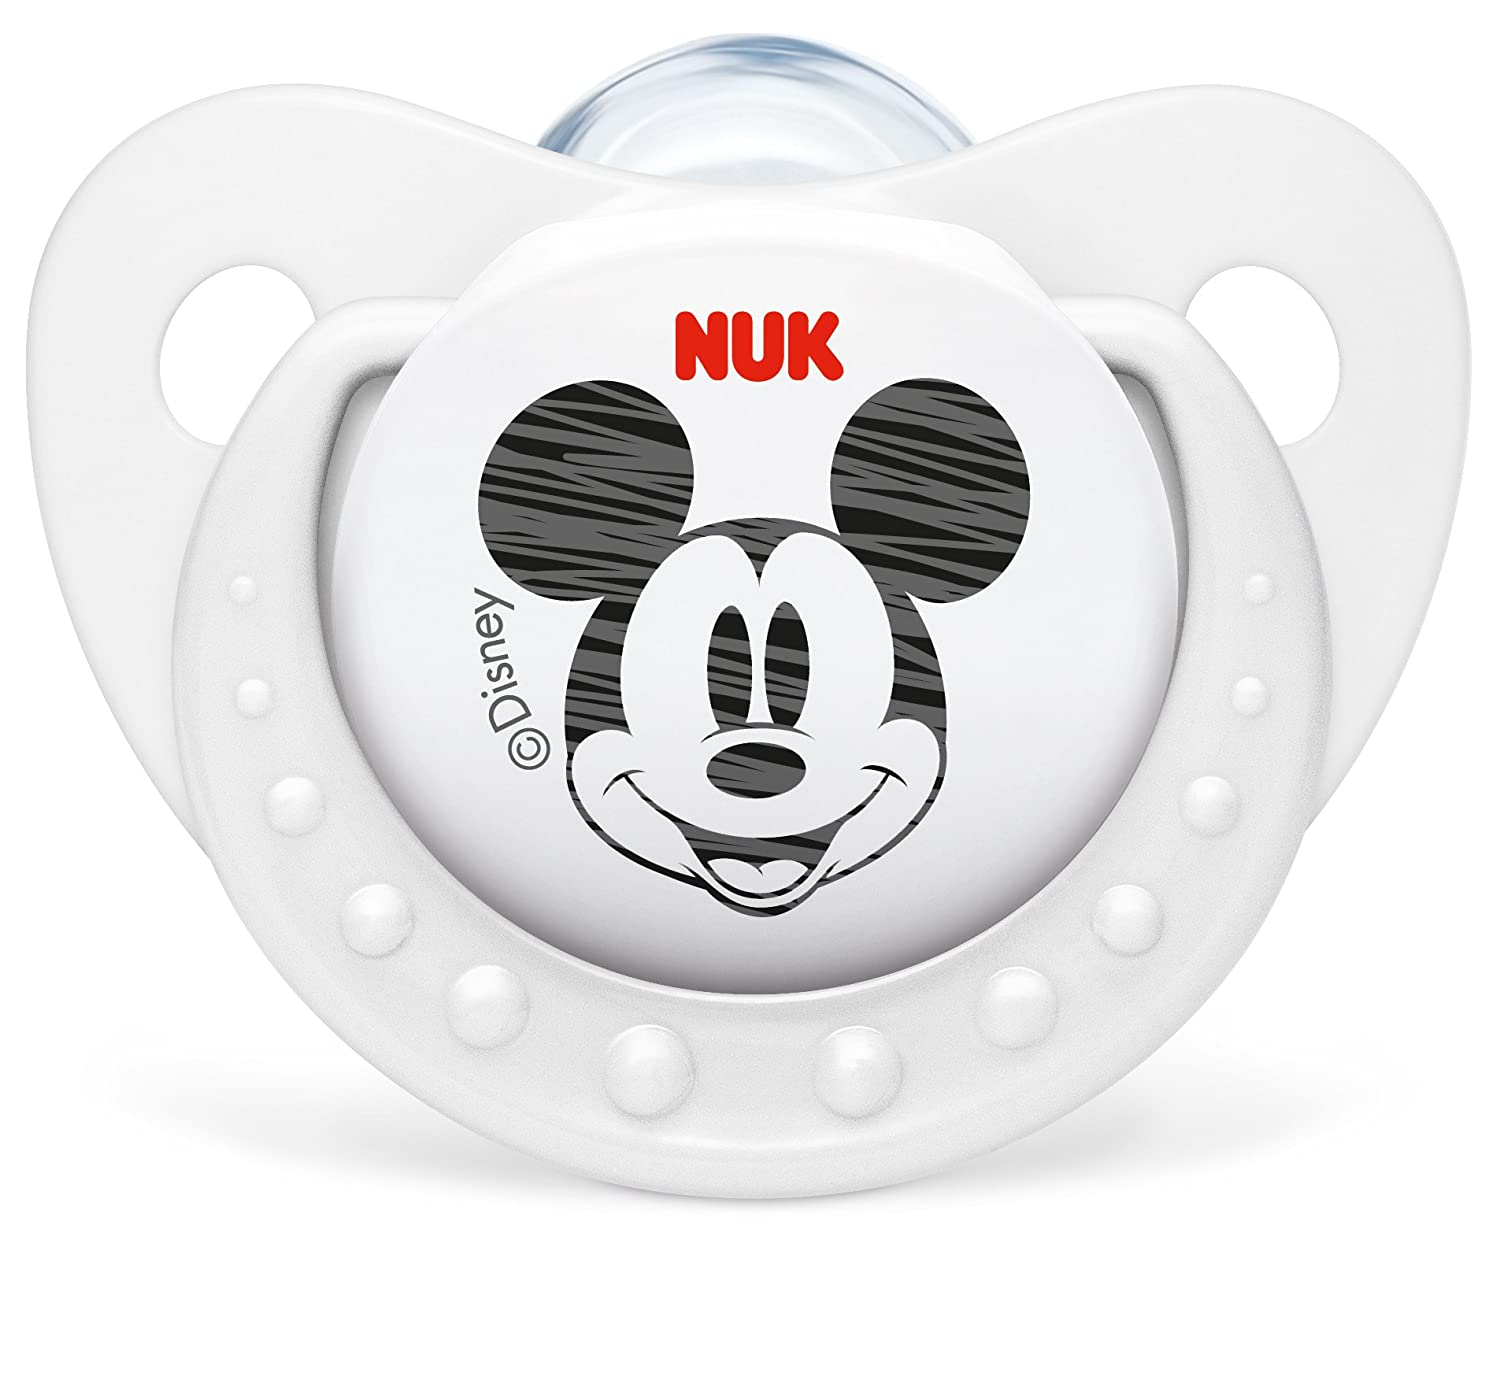 Nuk 2 Silicone Physiological Soothers Minnie Mouse Dummy  Pack of 2 6-18 Months